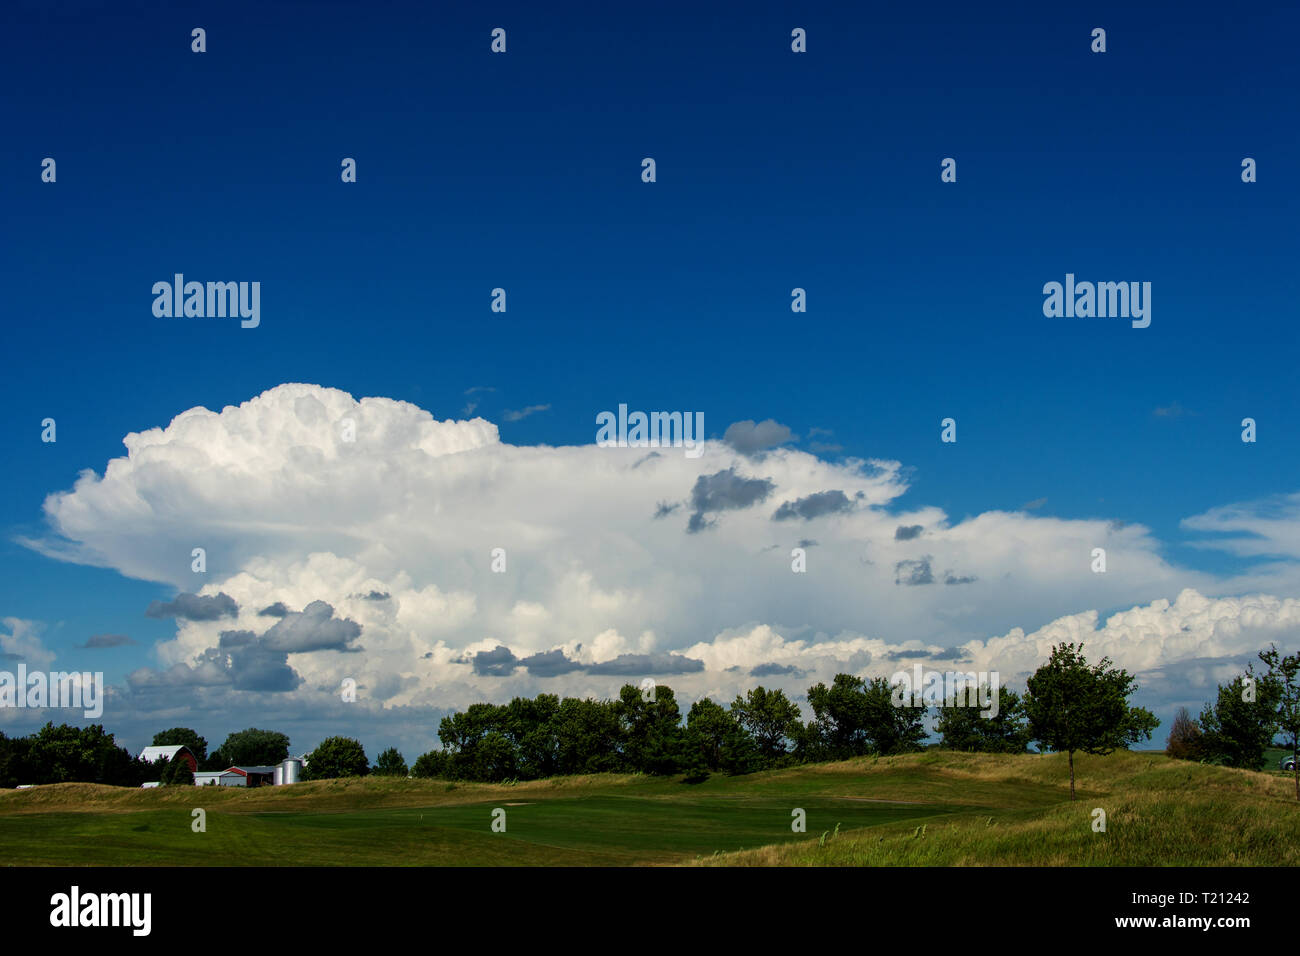 Gathering storm clouds over a tree line with distant farm buildings, Ankeny, Iowa - Stock Image